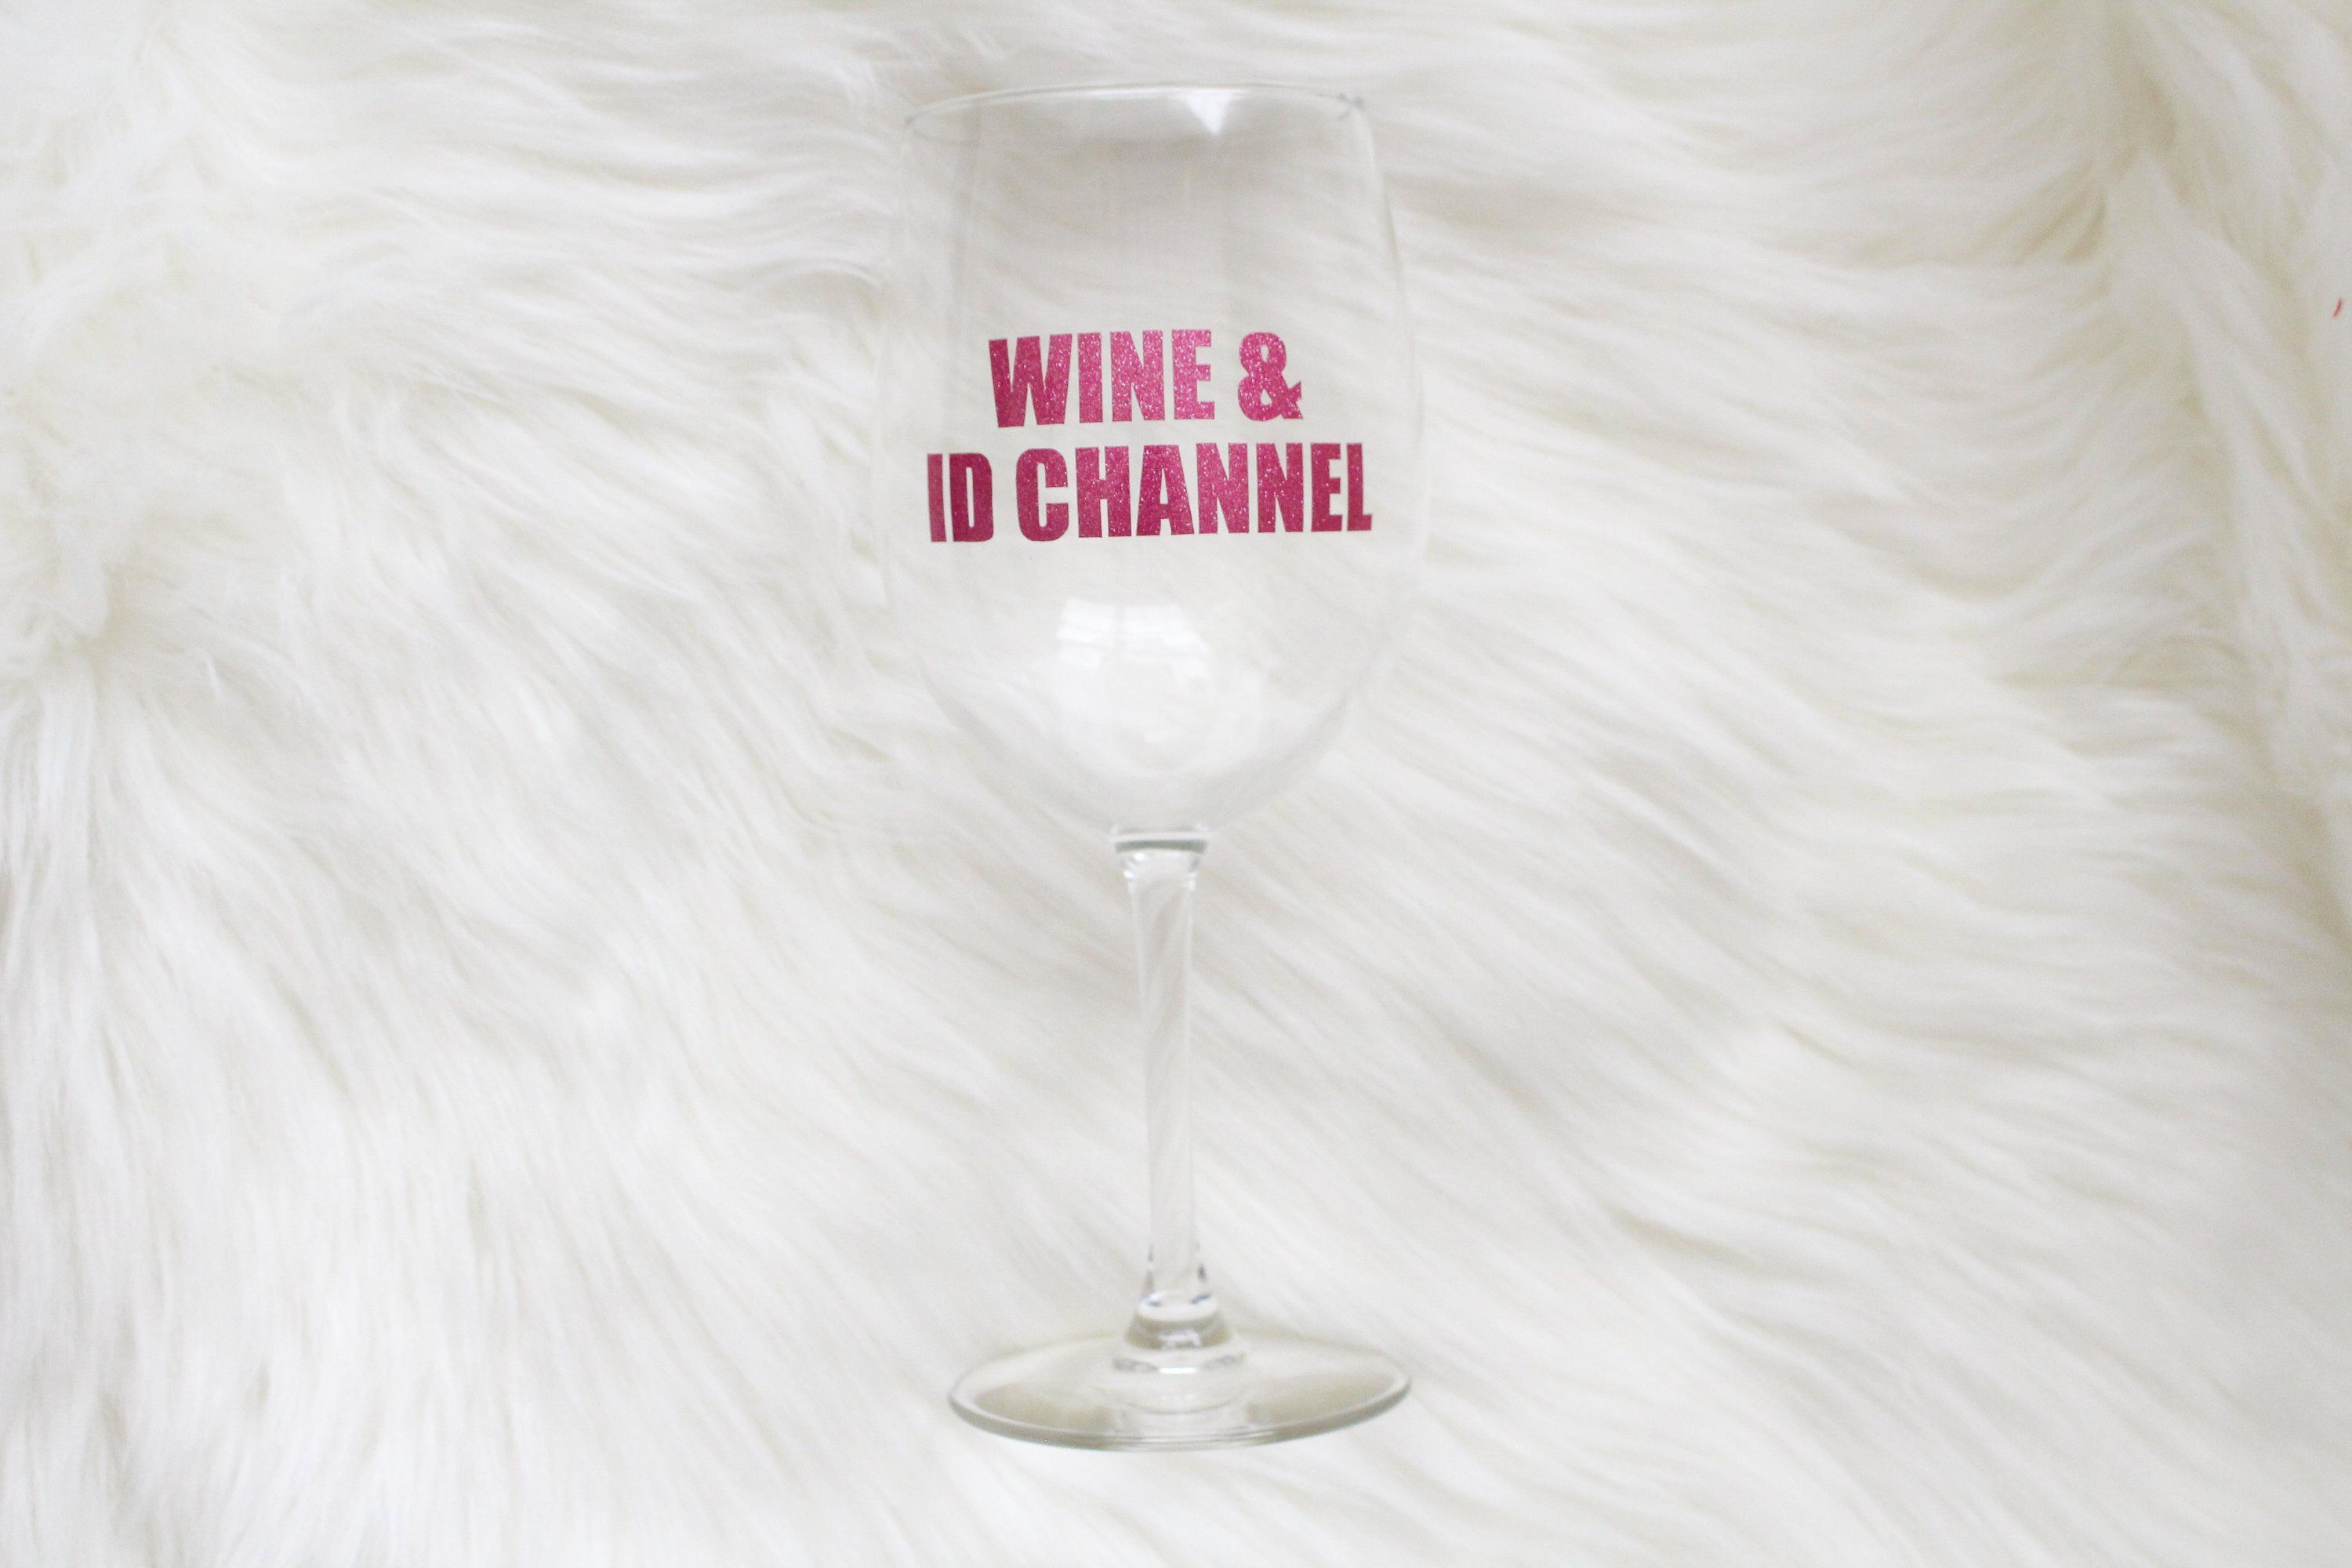 Id Channel Wine Glass Investigation Discovery Show